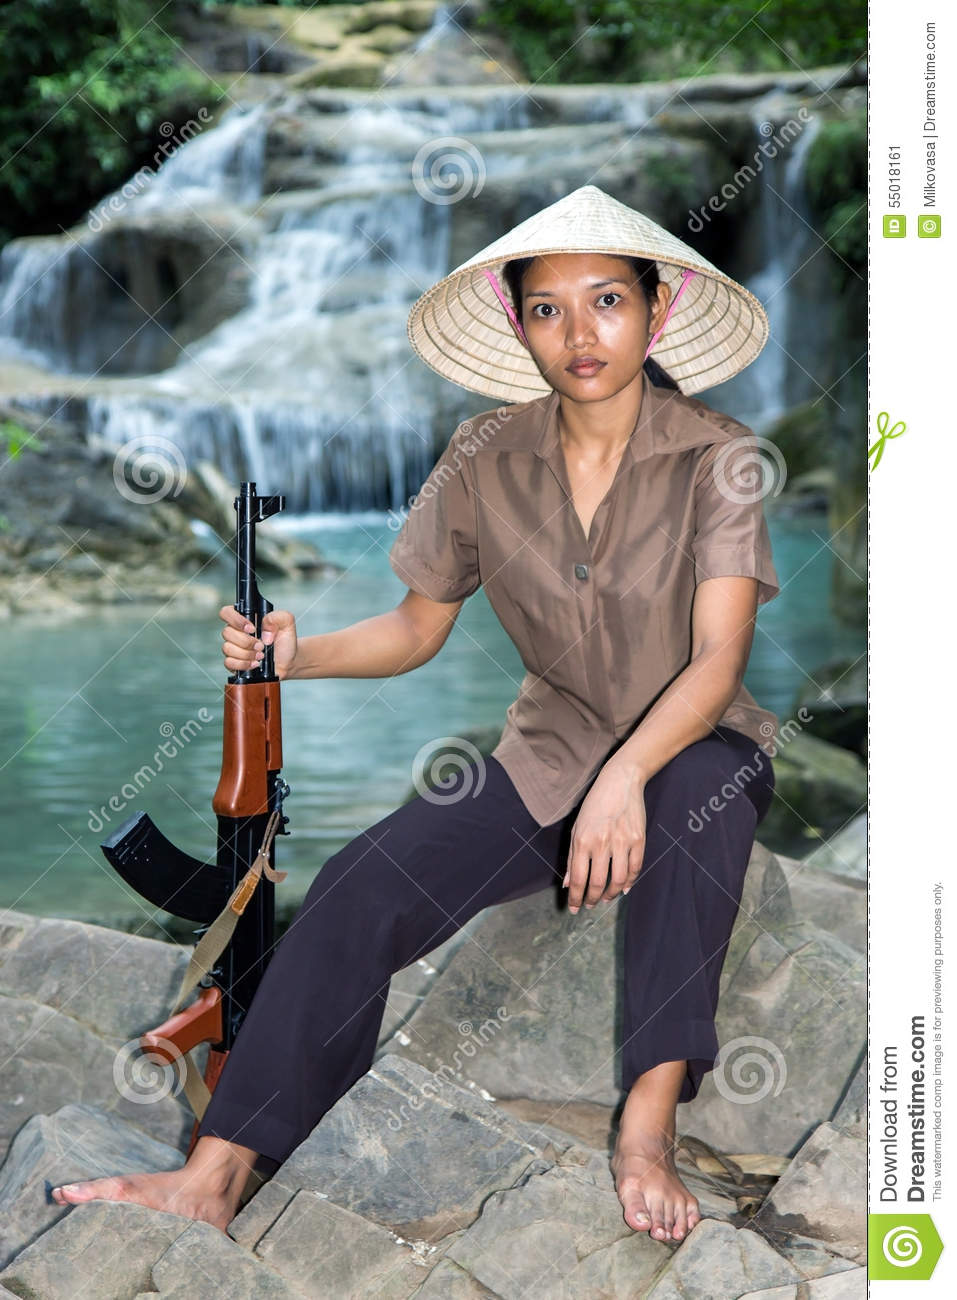 rifle asian single women Filipino4ucom is an online asian dating site and filipino singles chat community offering beautiful filipina brides and foreign men a safe, fun environment to find true love asian dating was created for filipina singles seeking family-oriented partners for serious relationships, love, dating and romance.